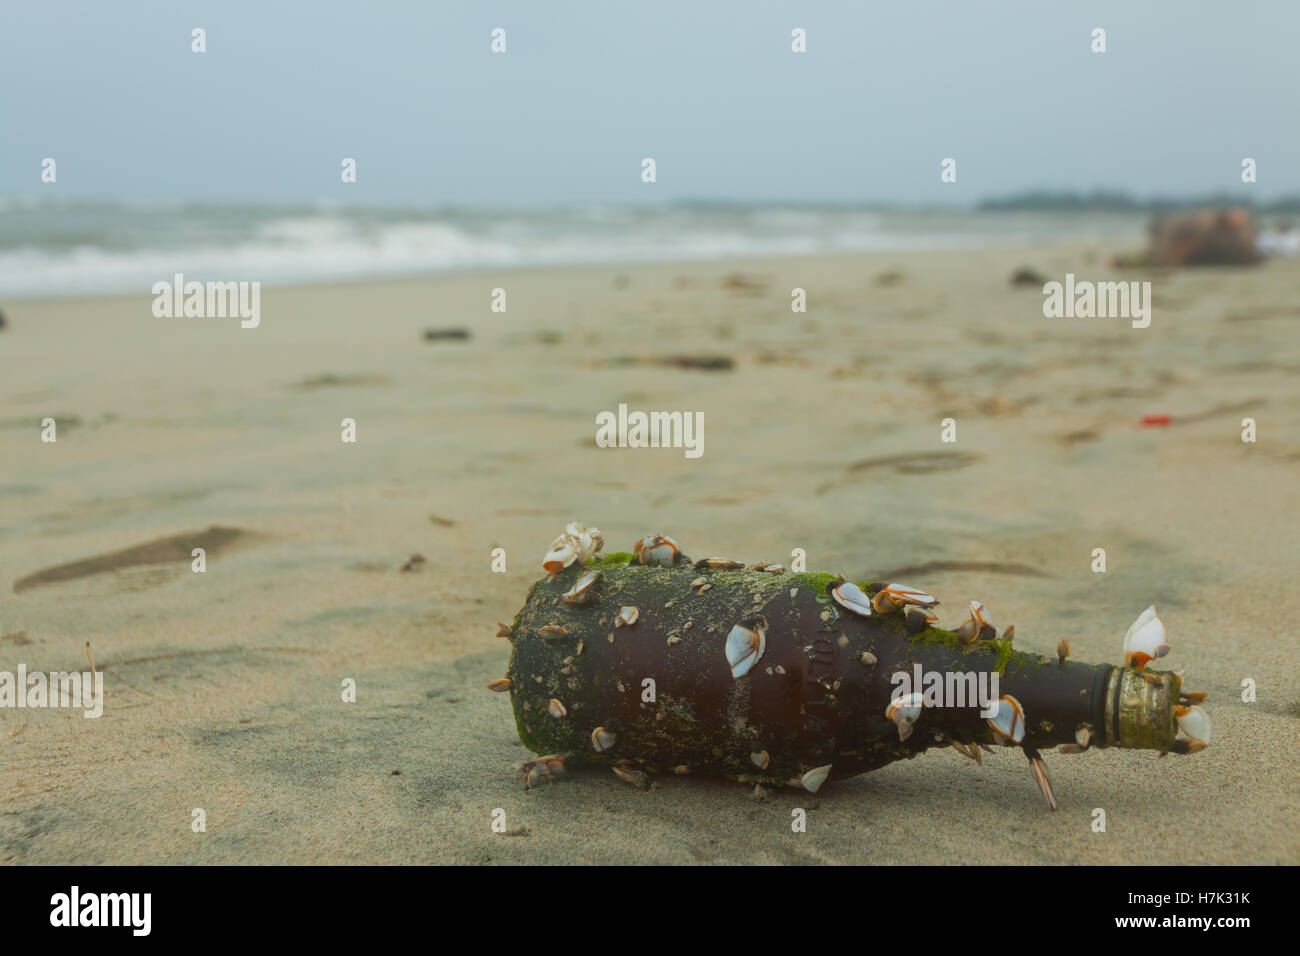 Old Dirty Bottle on the sand Beach - Stock Image